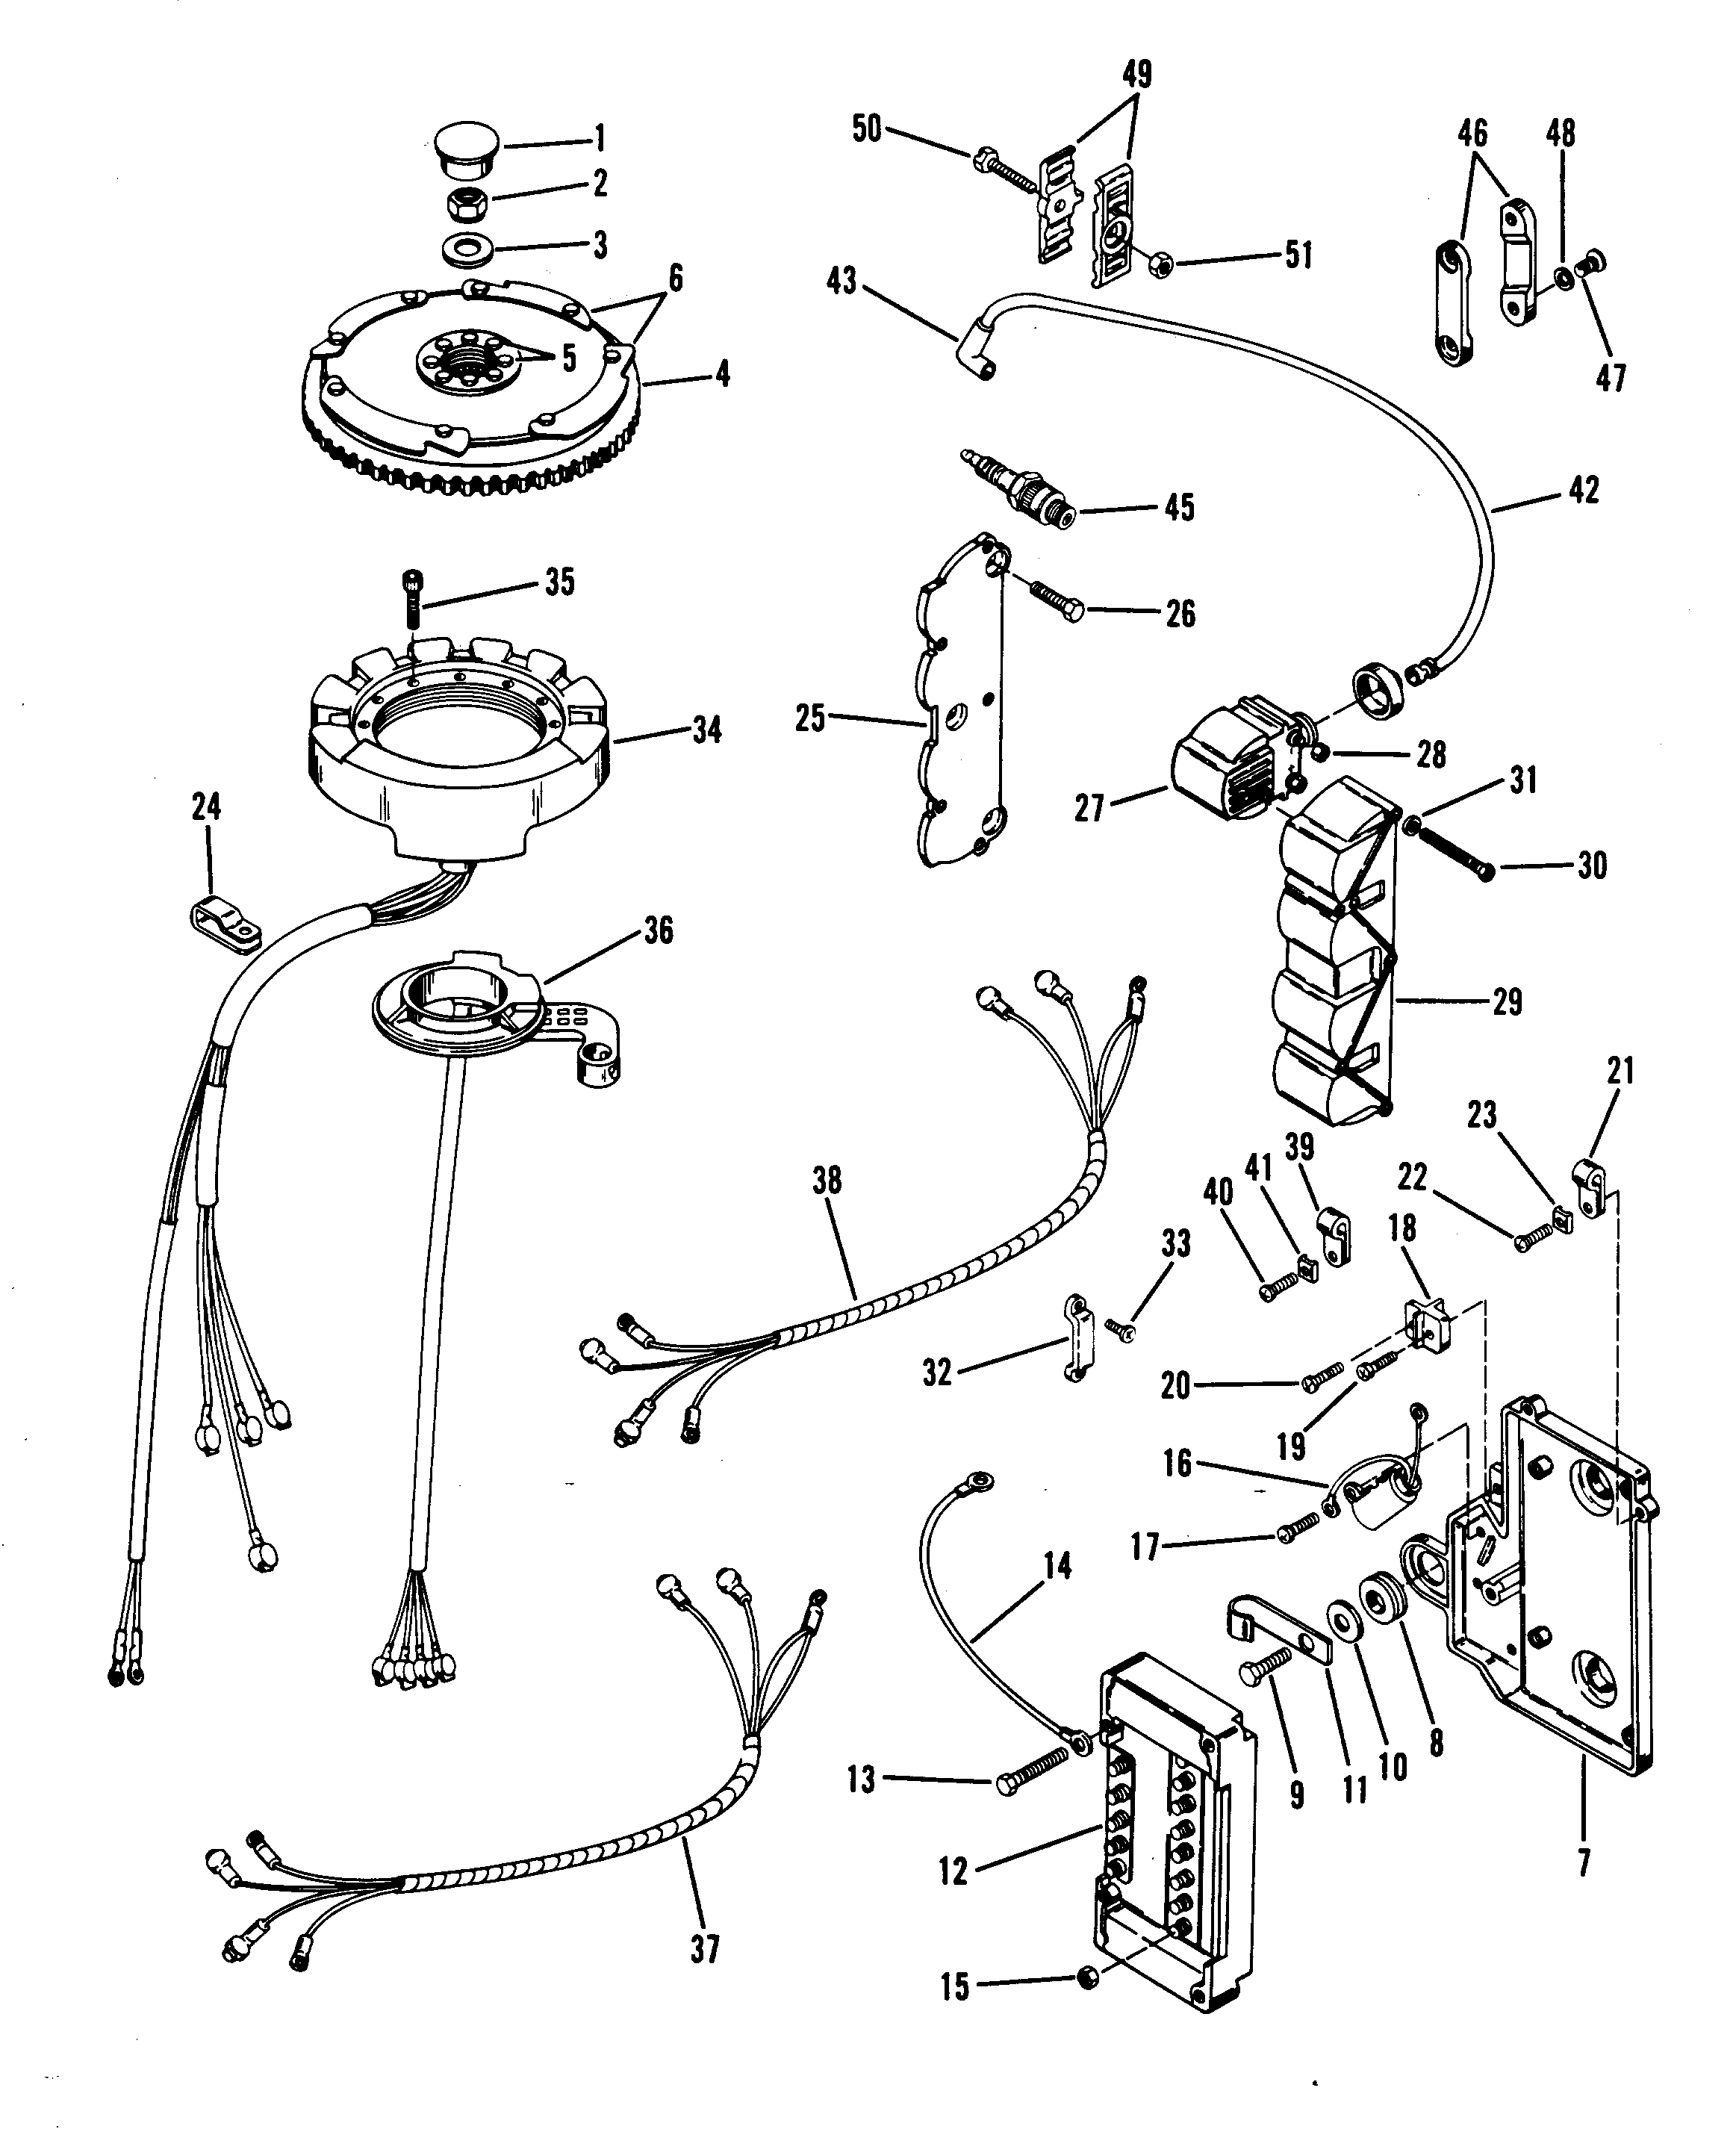 mercury stator wiring diagram wiring diagram and schematic design 1977 mercury 850 outboard wiring diagram diagrams